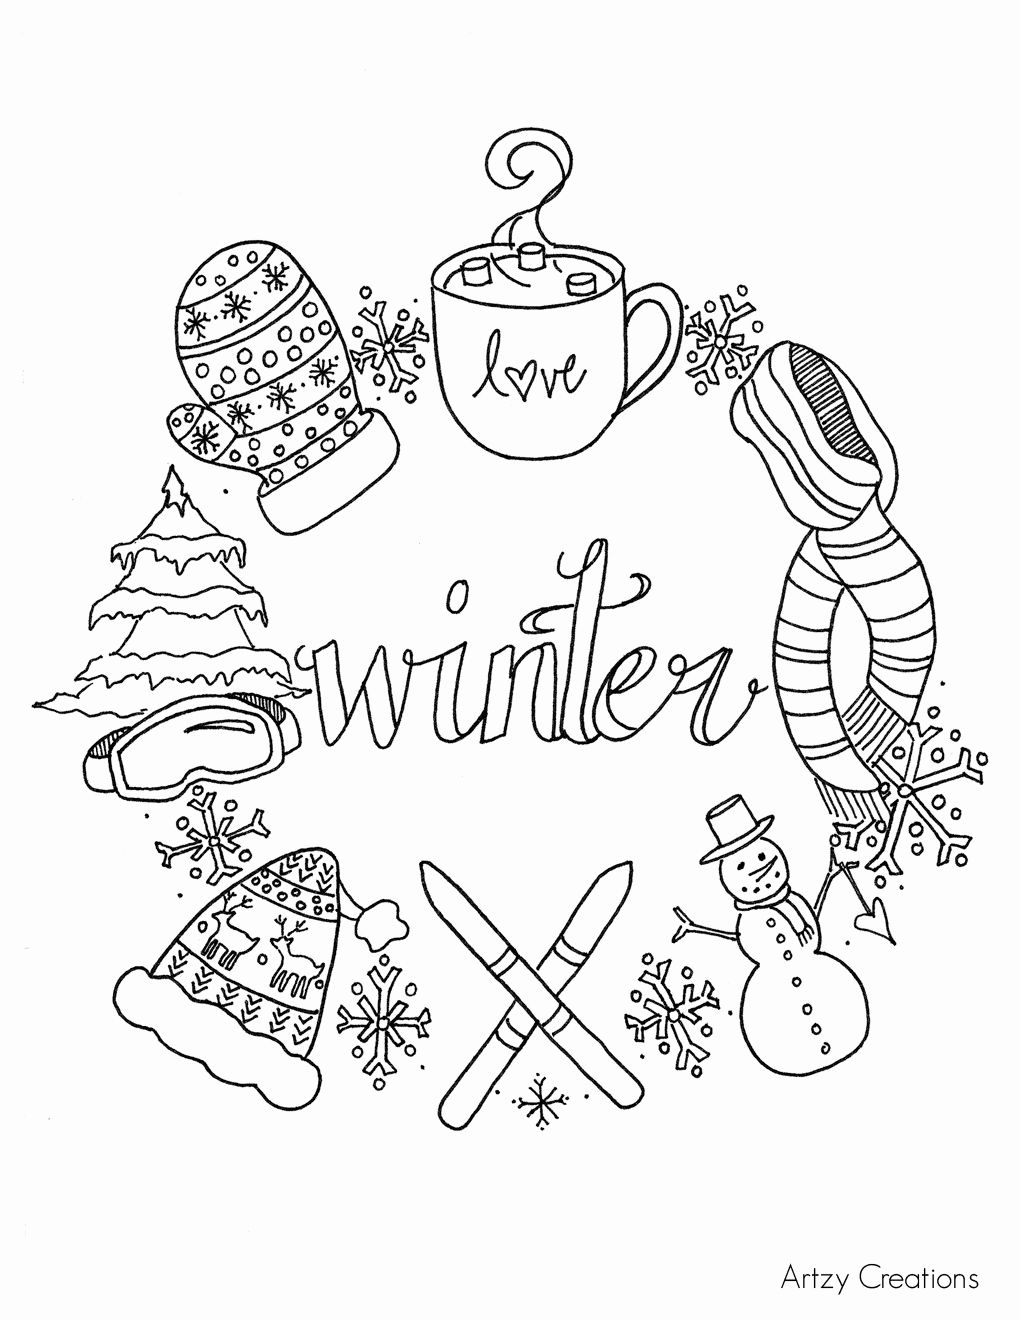 Winter Themed Coloring Pages Fresh Pin On Seasons Coloring Pages In 2020 Coloring Pages Winter Crayola Coloring Pages Christmas Coloring Pages